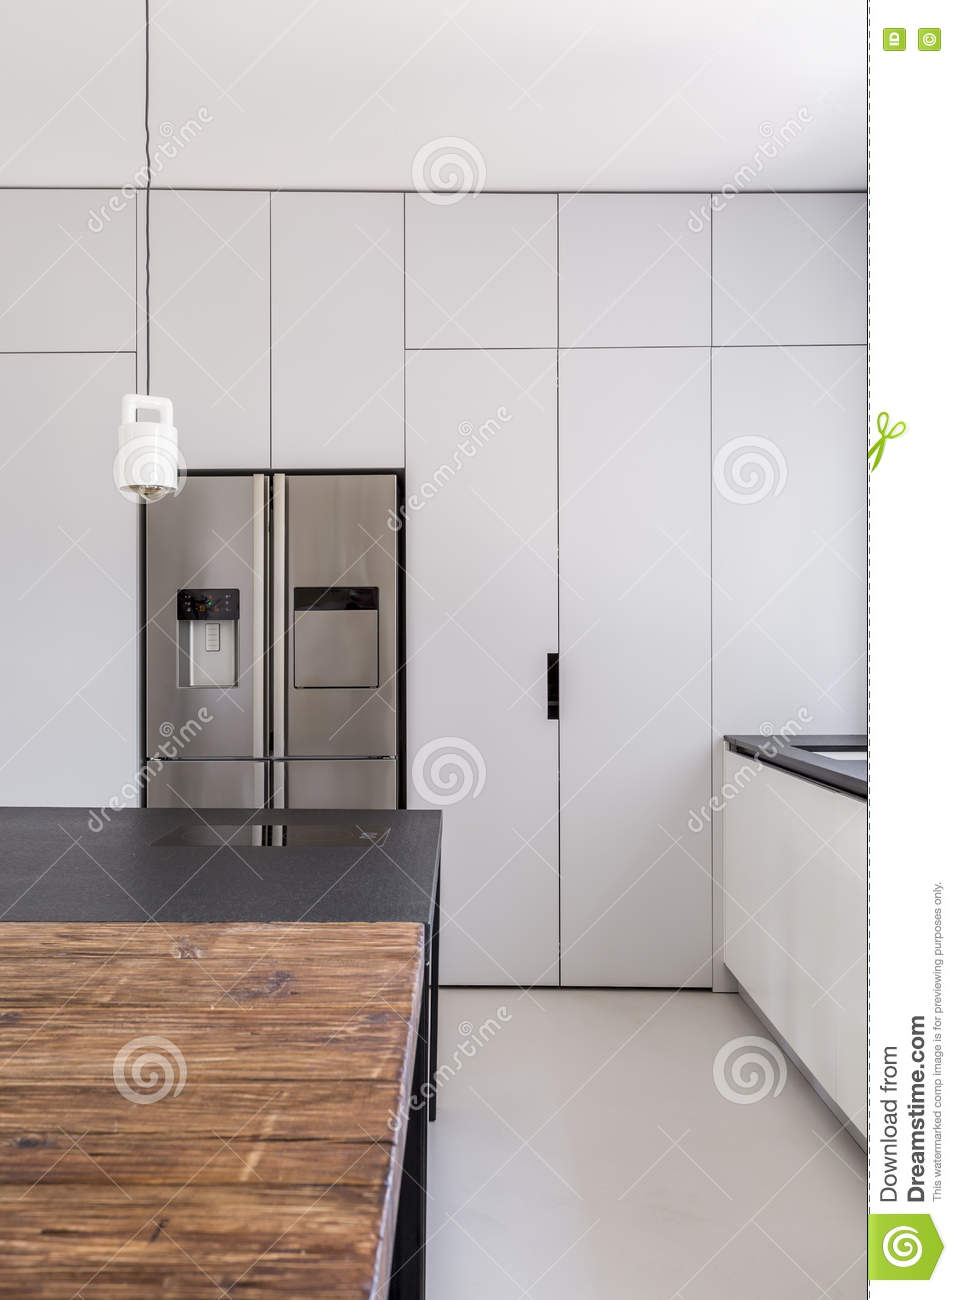 Cuisine Fonctionnelle Simple Photo Stock Image Du Espace Home